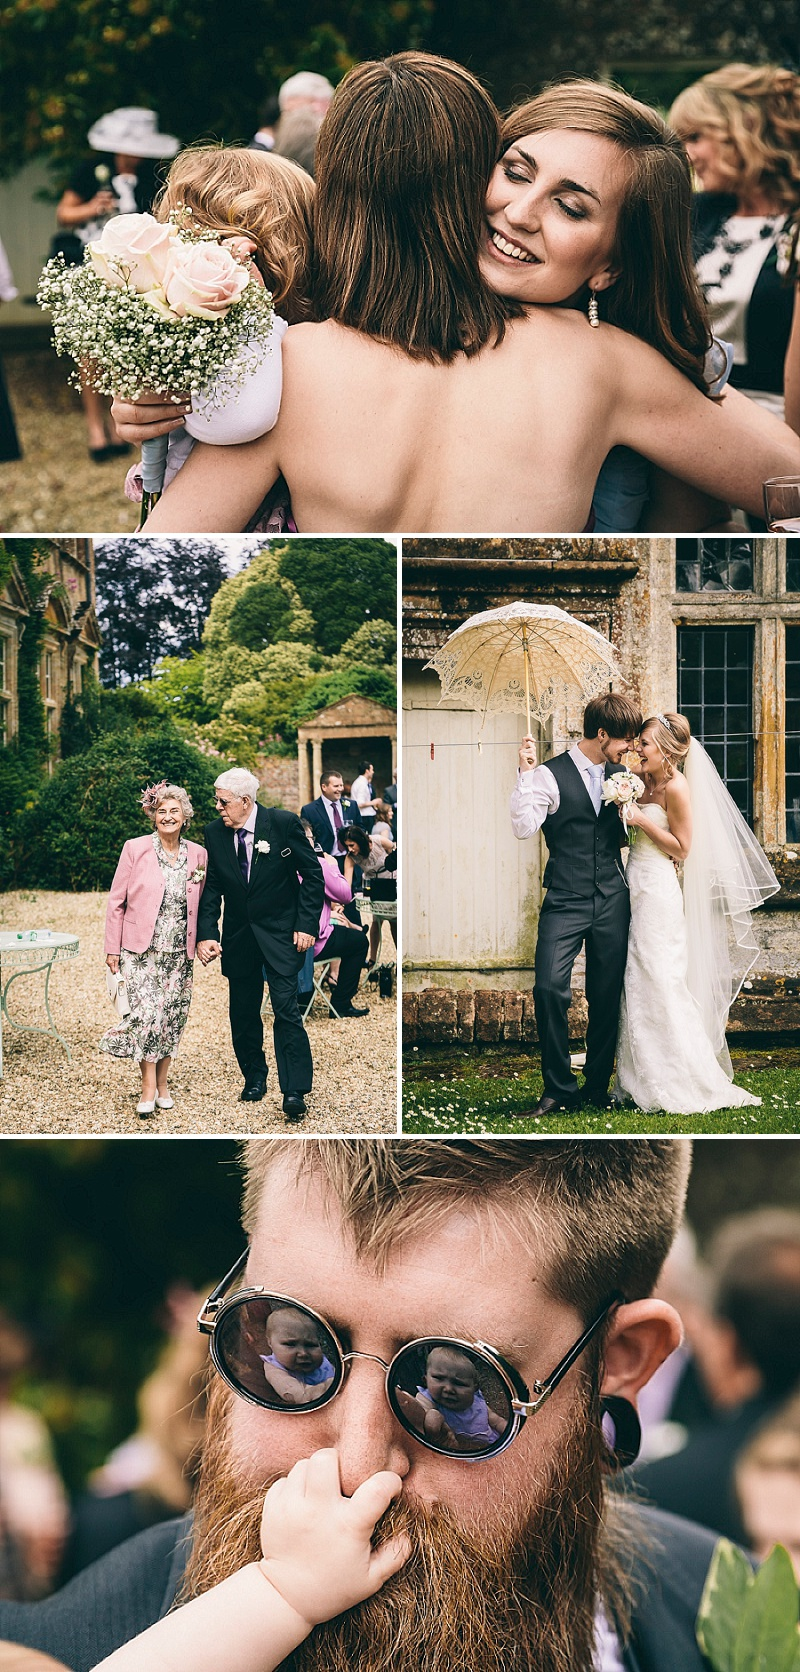 Elegant Wedding Photography: Elegant Wedding At Brympton House In Somerset With A Duck